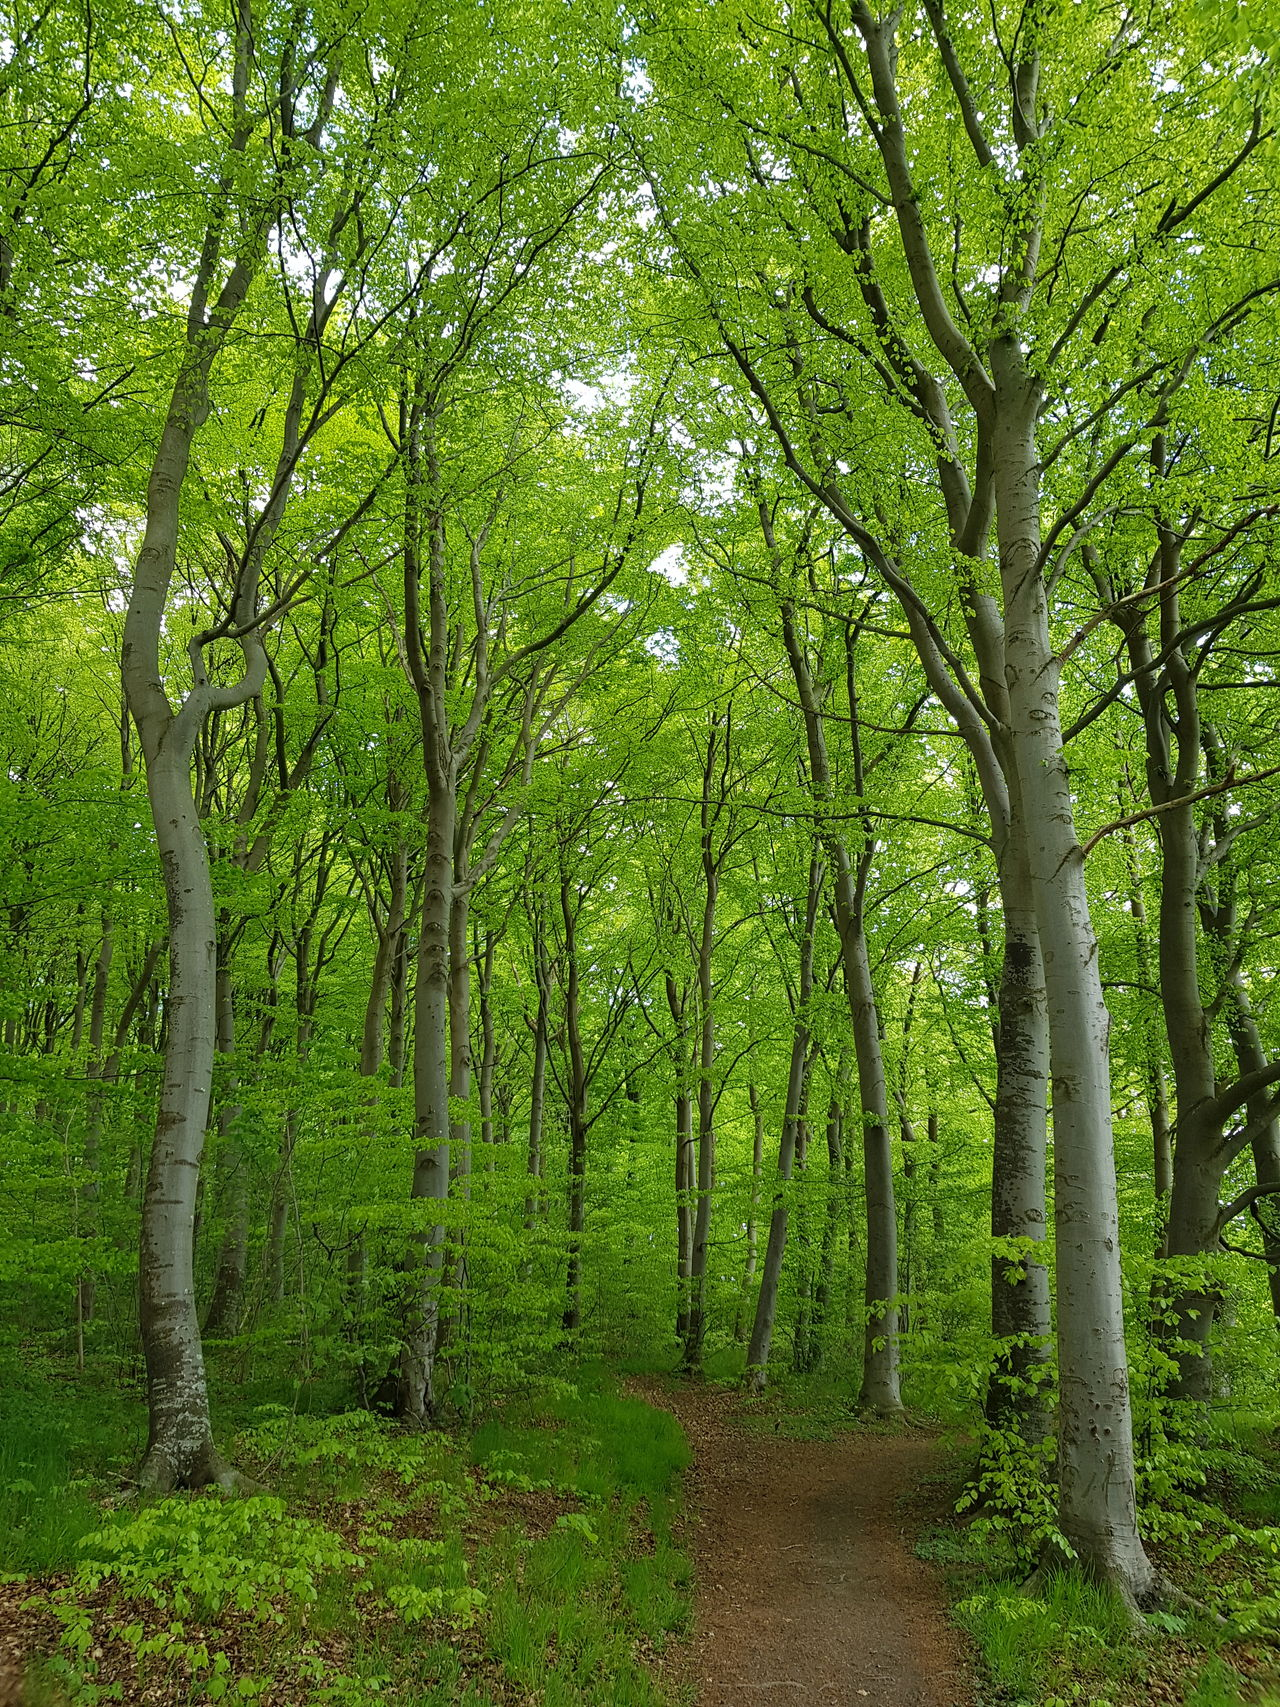 Tree Forest Green Color Nature Growth Beauty In Nature Tree Trunk Outdoors Lush Foliage Day WoodLand Tranquility Scenics No People Tranquil Scene Tree Area Grass Wilderness Area Freshness